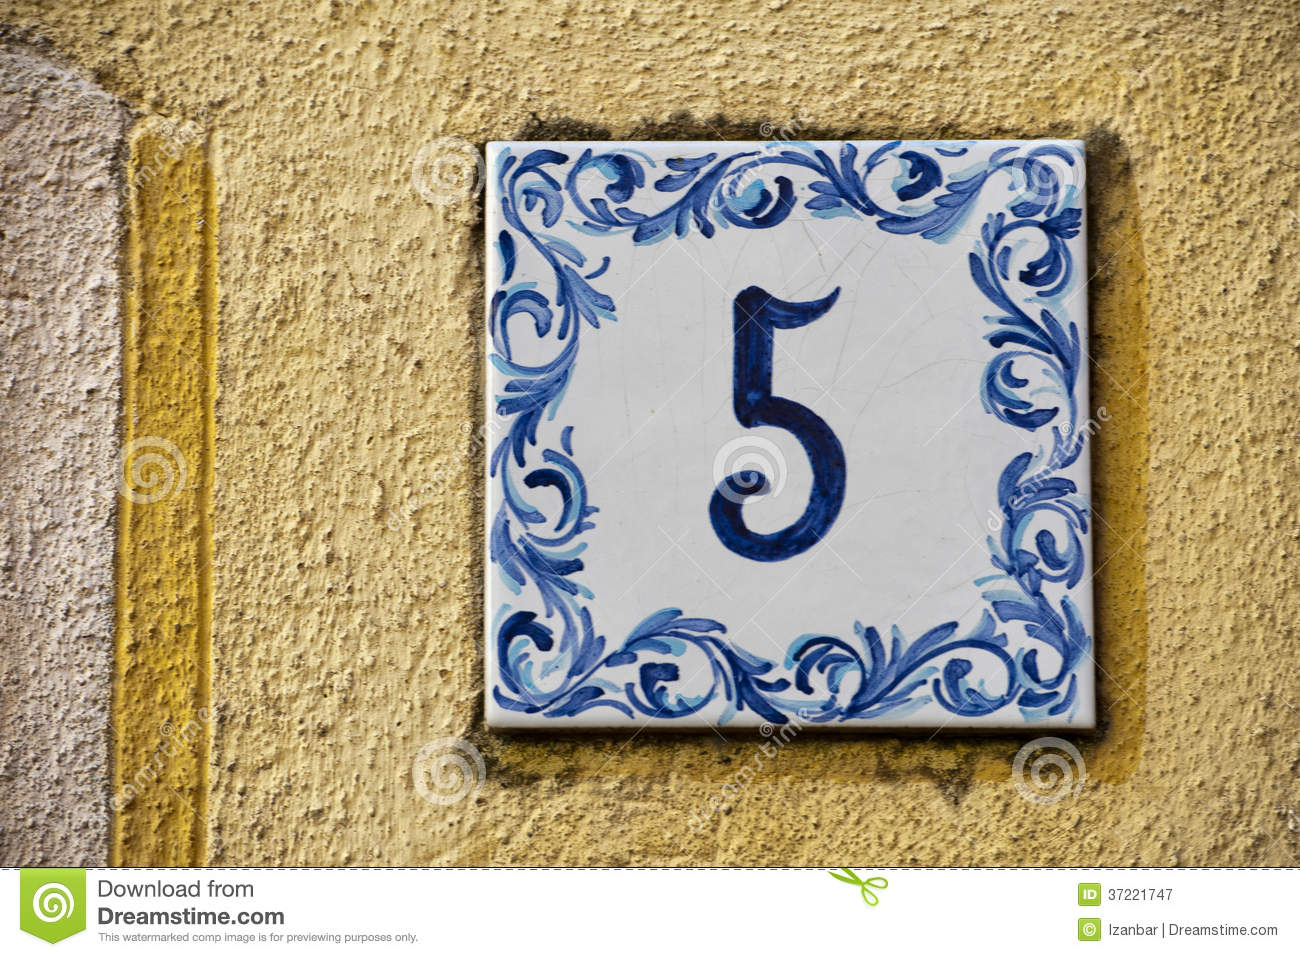 Ceramic number tile 5 stock image image of ornament 37221747 ceramic number tile 5 dailygadgetfo Images